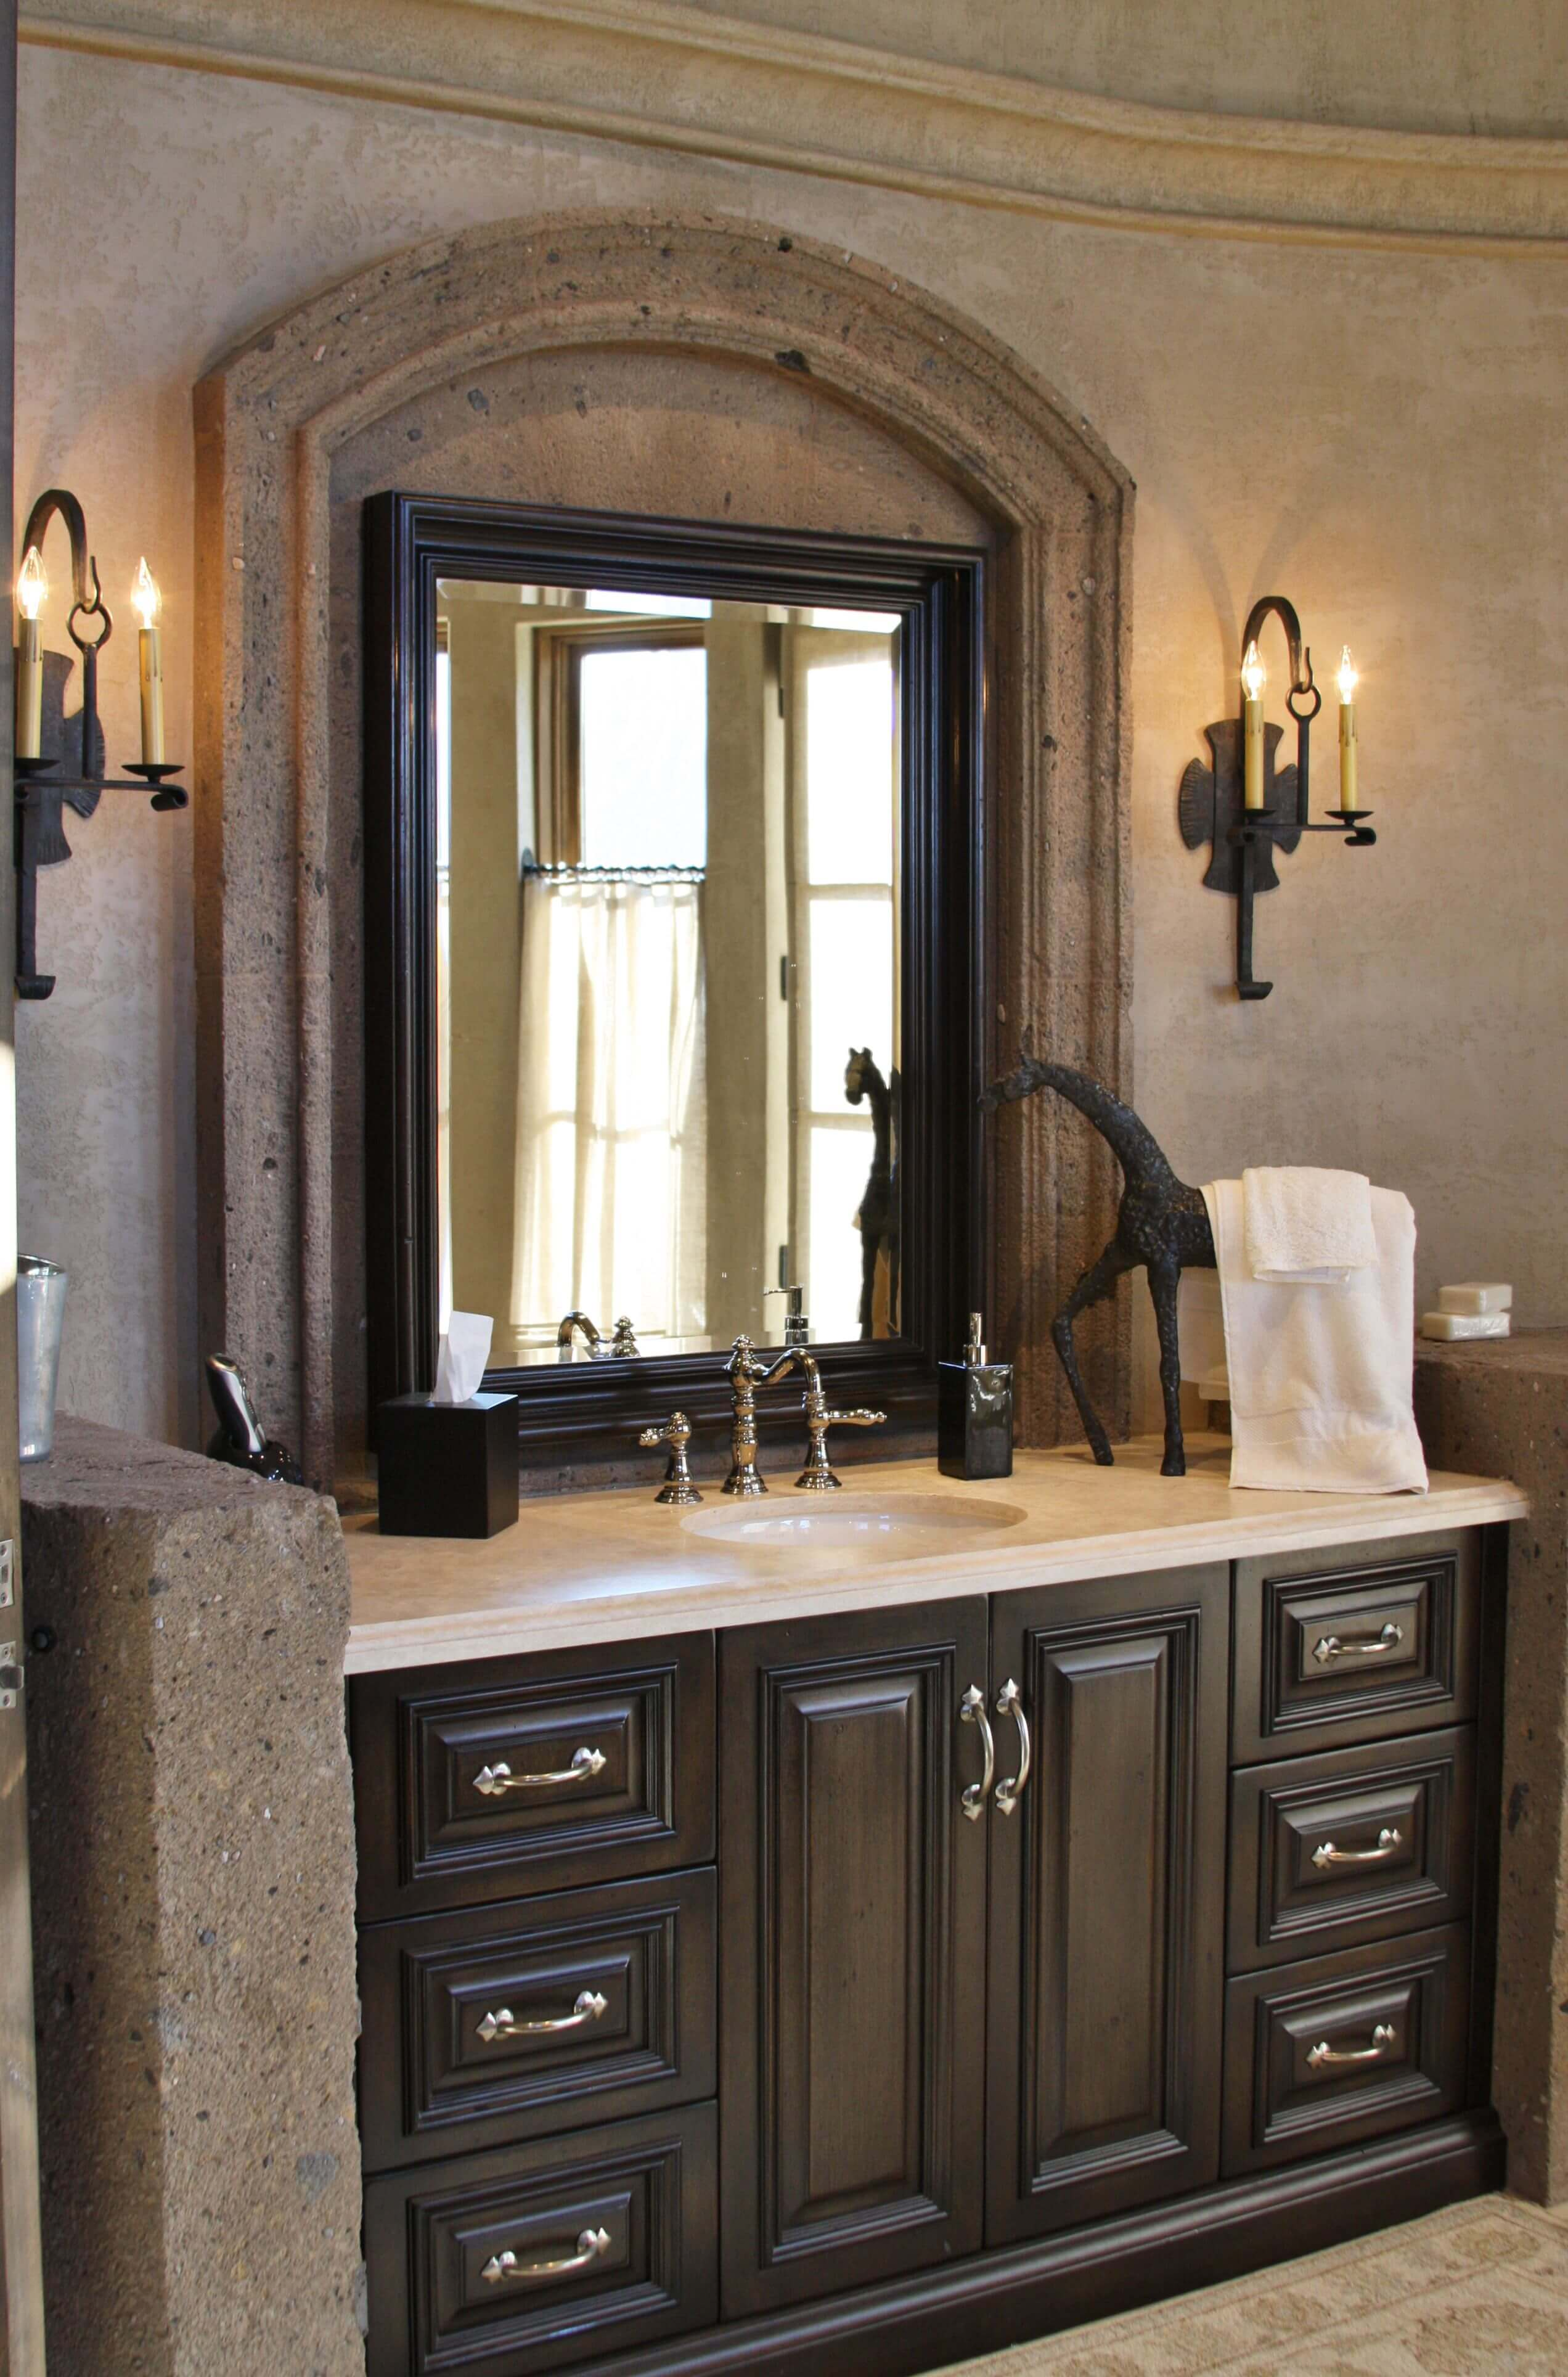 8-Vanity-Arched-Mirror-Surround-in-Tobacco-Cantera-Stone-with-Distressed-Finish